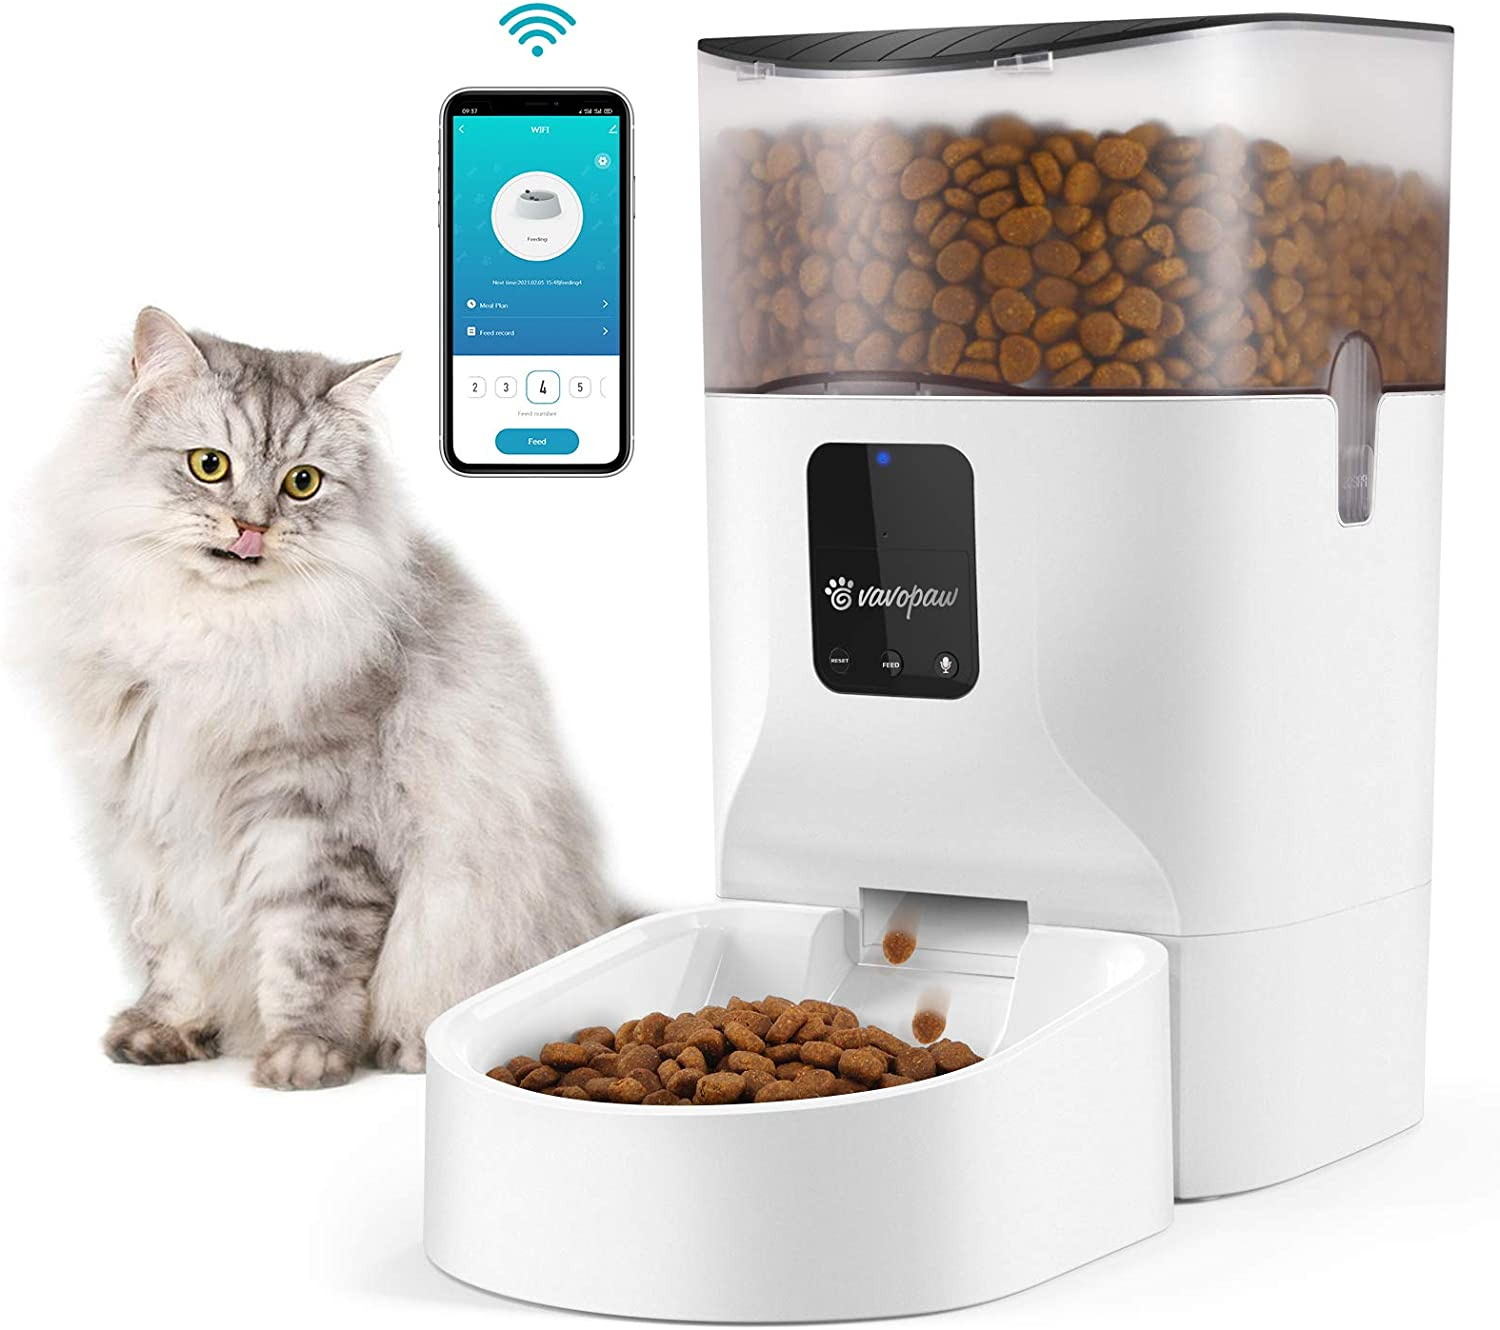 VavoPaw 7L Automatic Cat Feeder, WiFi Enabled Smart Food Dispenser for Cats, Dogs & Small Pets with APP Control, Programmable Timer, Voice Recorder and Portion Control Up to 10 Meals per Day